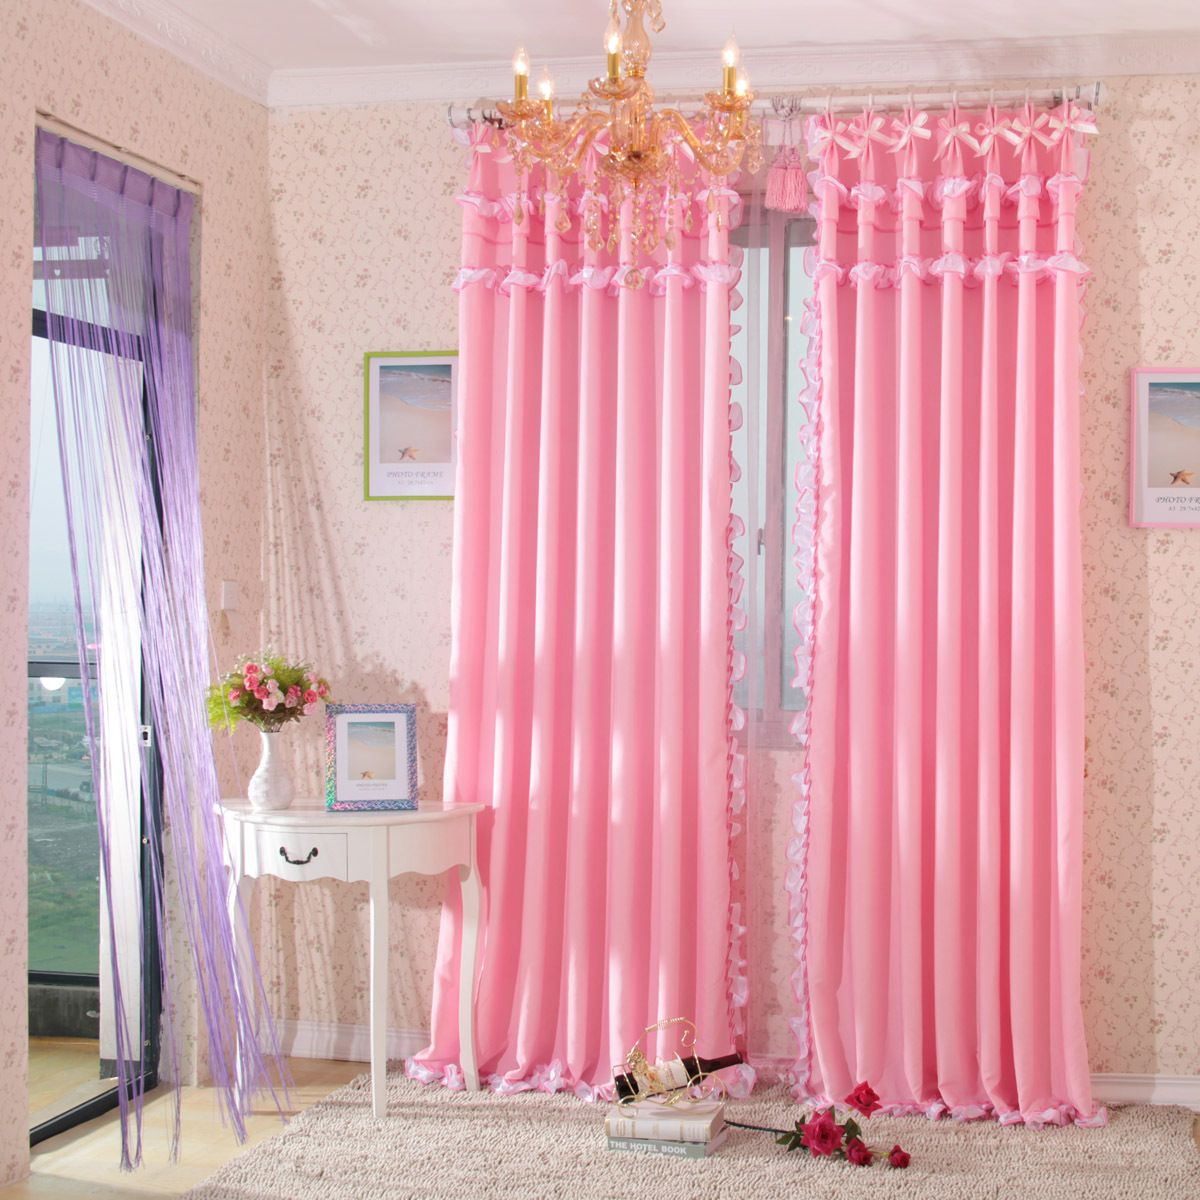 Remarkable Pink Bedroom Curtain In Impressive Fl Wall Design With White Vase Table And Wonderful Gold Chandelier Also Grey Rug Gorgeous